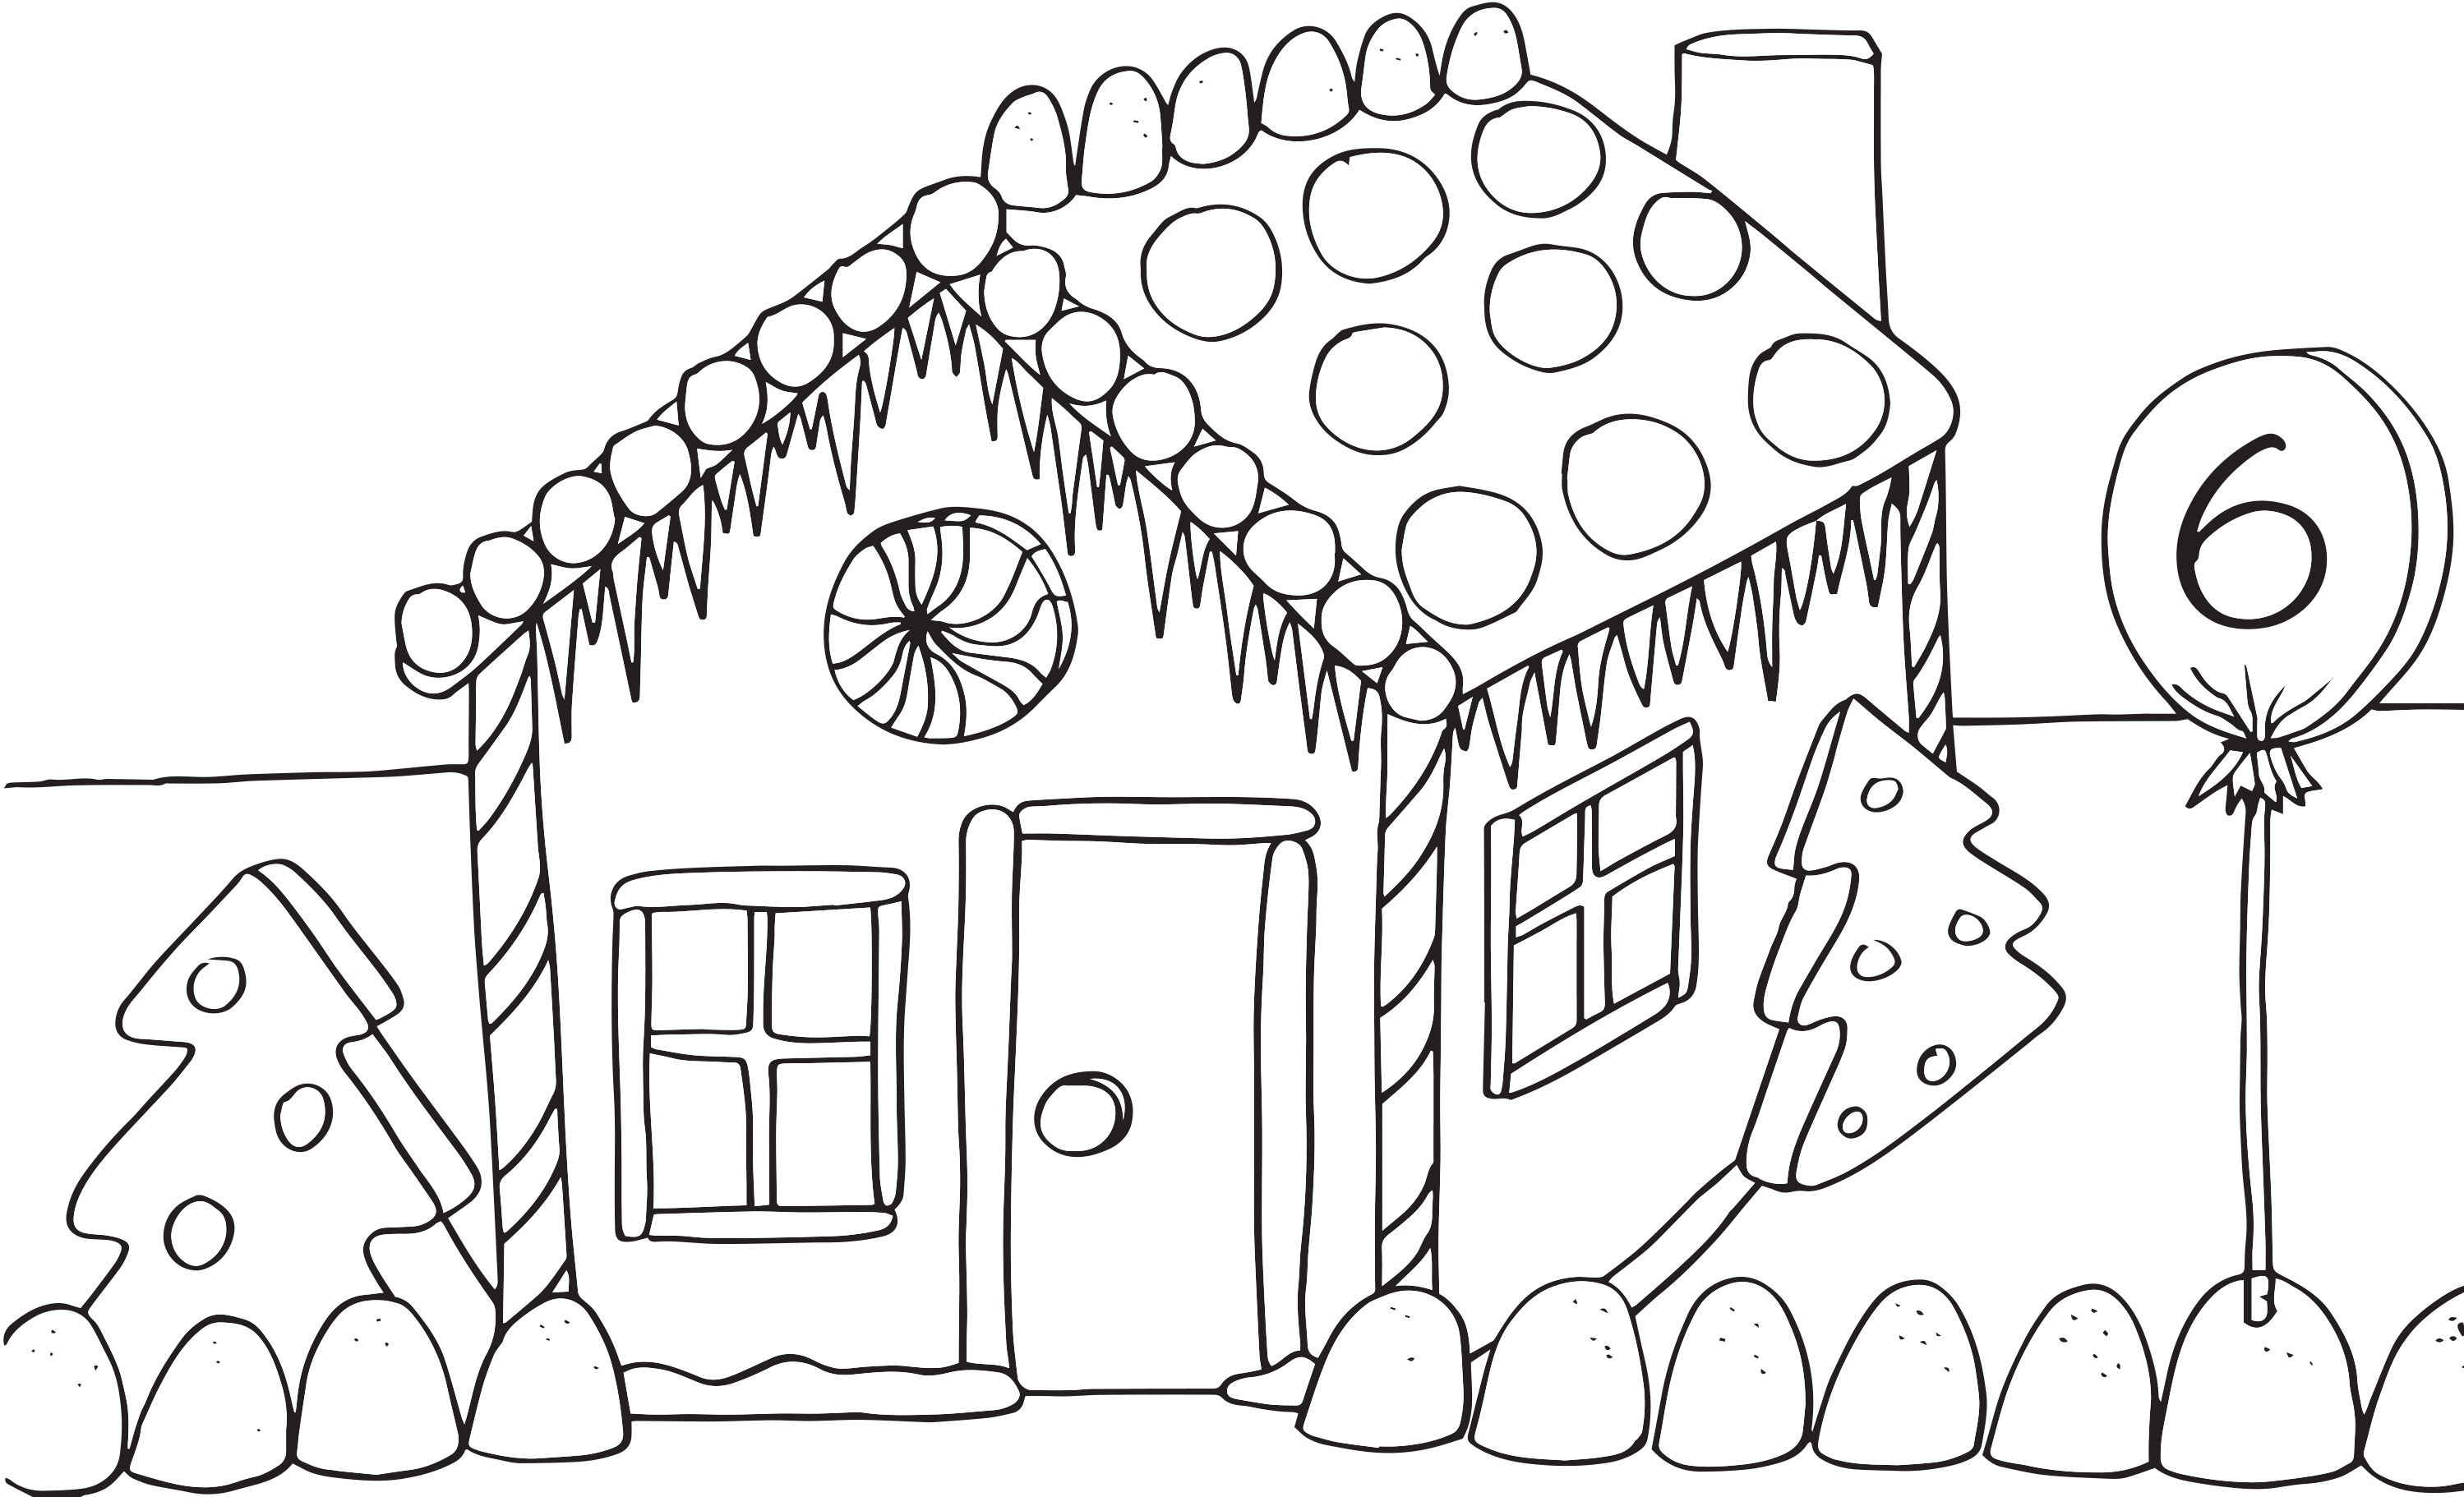 House Coloring Pages at GetDrawings.com | Free for personal ...